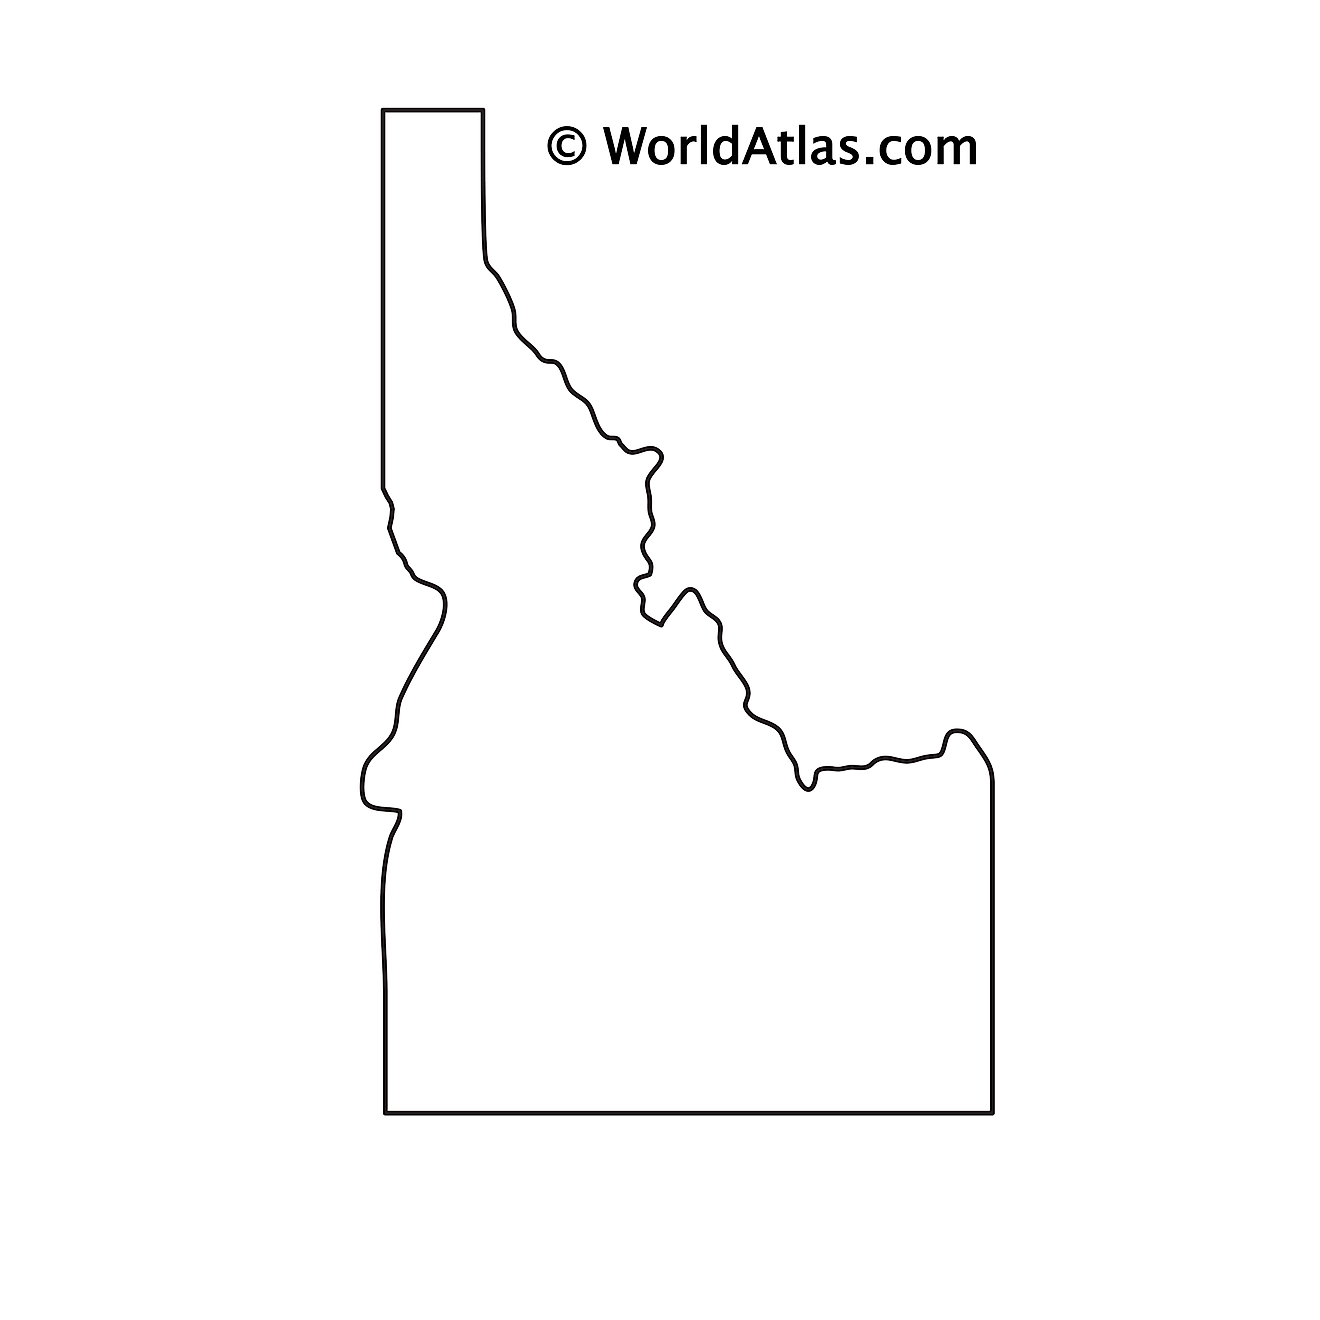 Blank outline map of Idaho